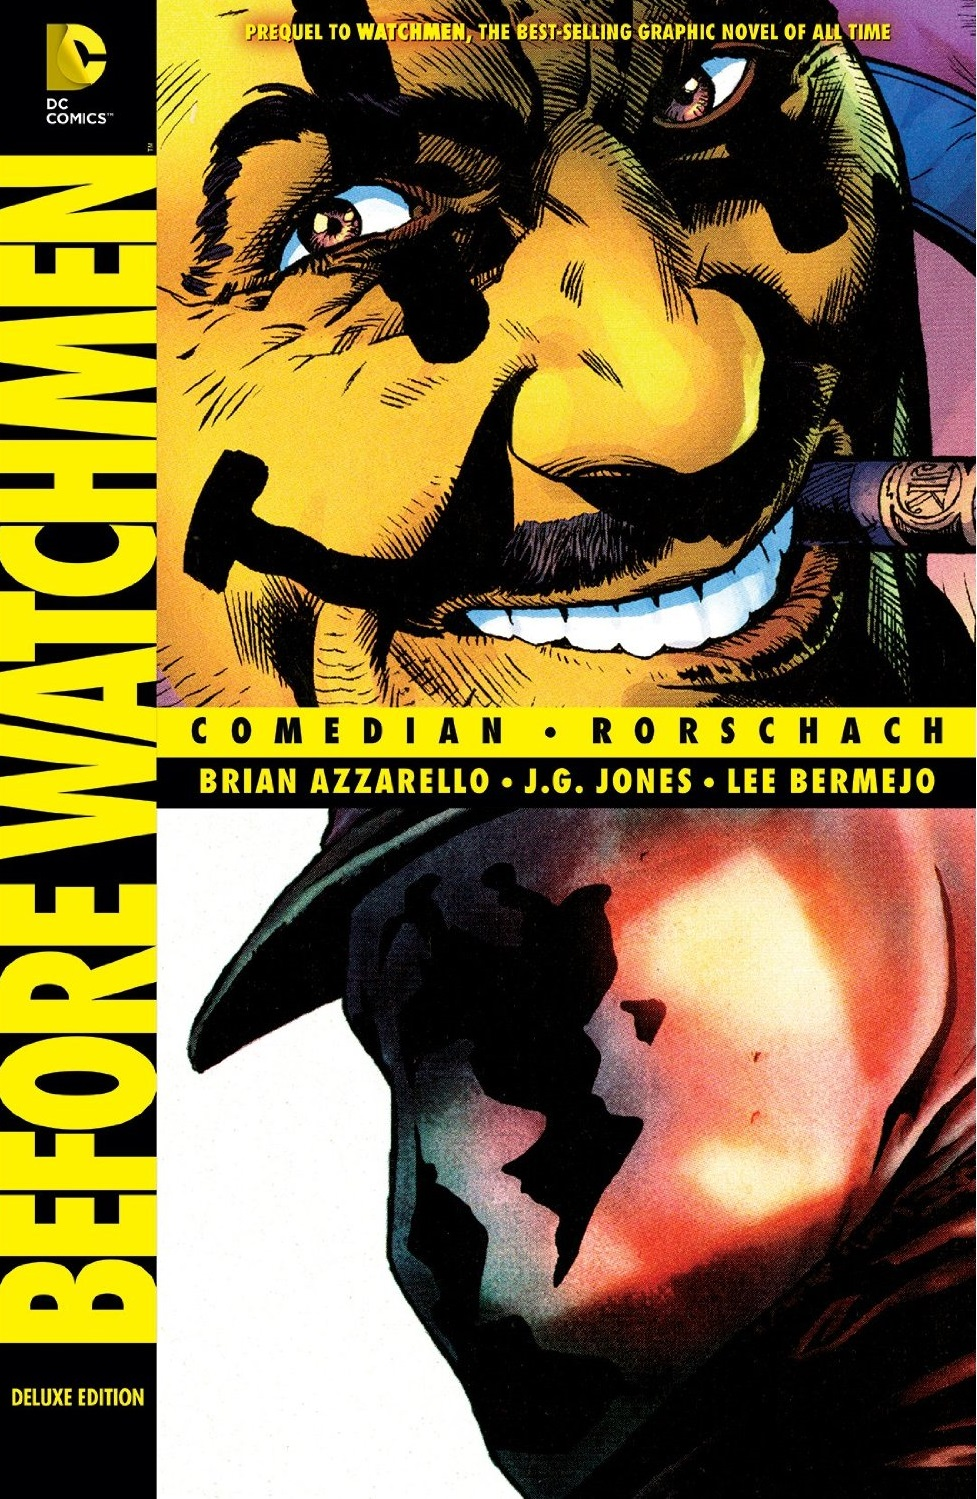 Before Watchmen: Comedian/Rorschach (Collected)